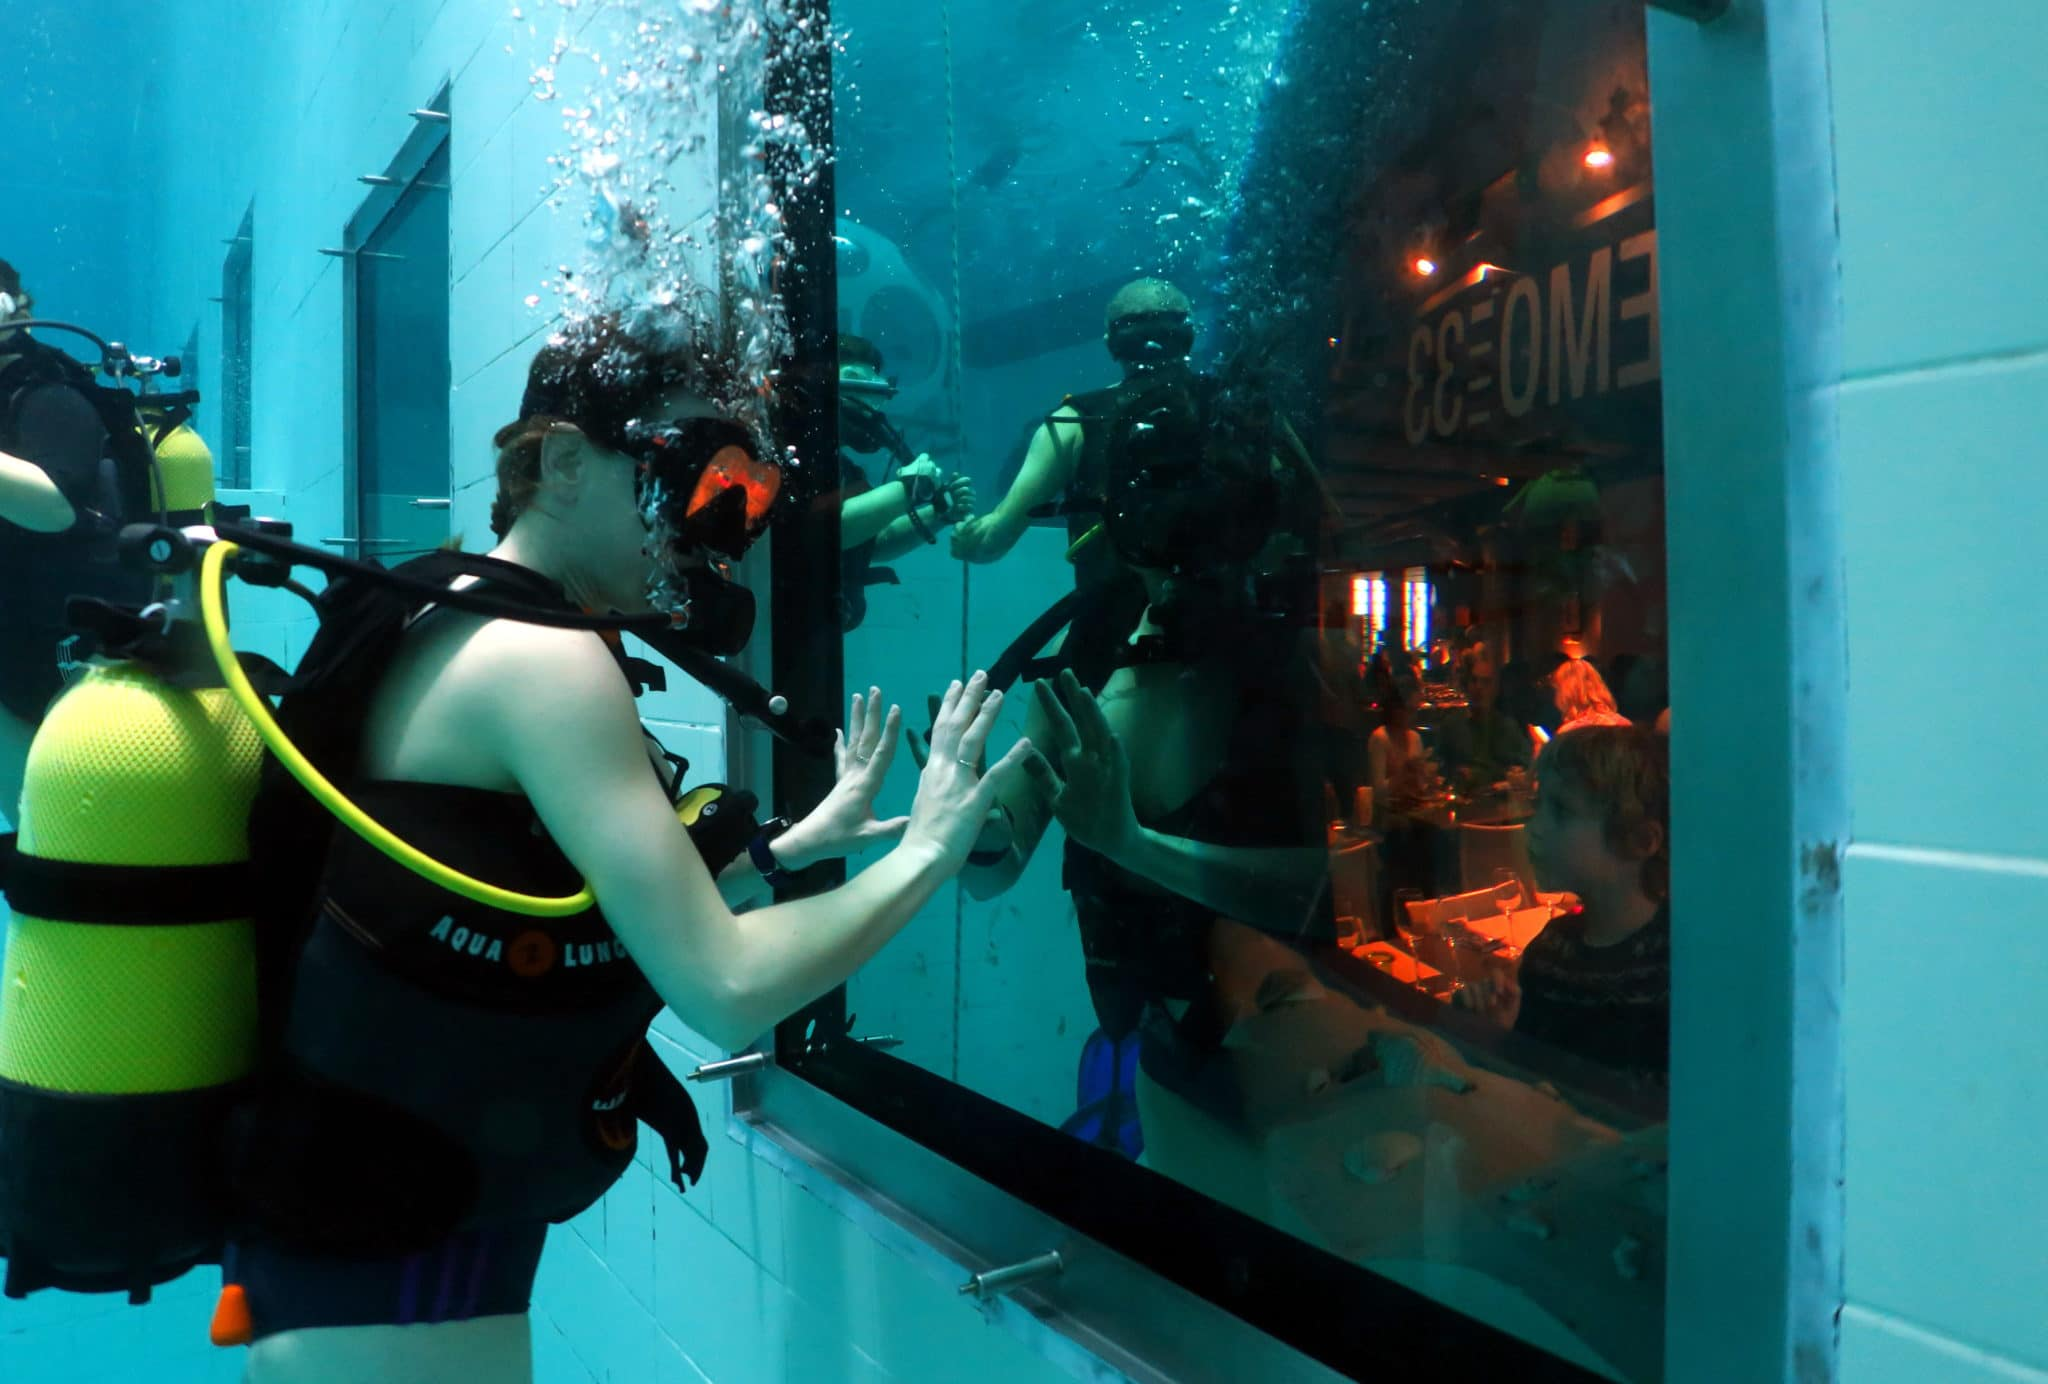 Scuba Diving In A Pool The Nemo 33 Experience In Brussels Belgium